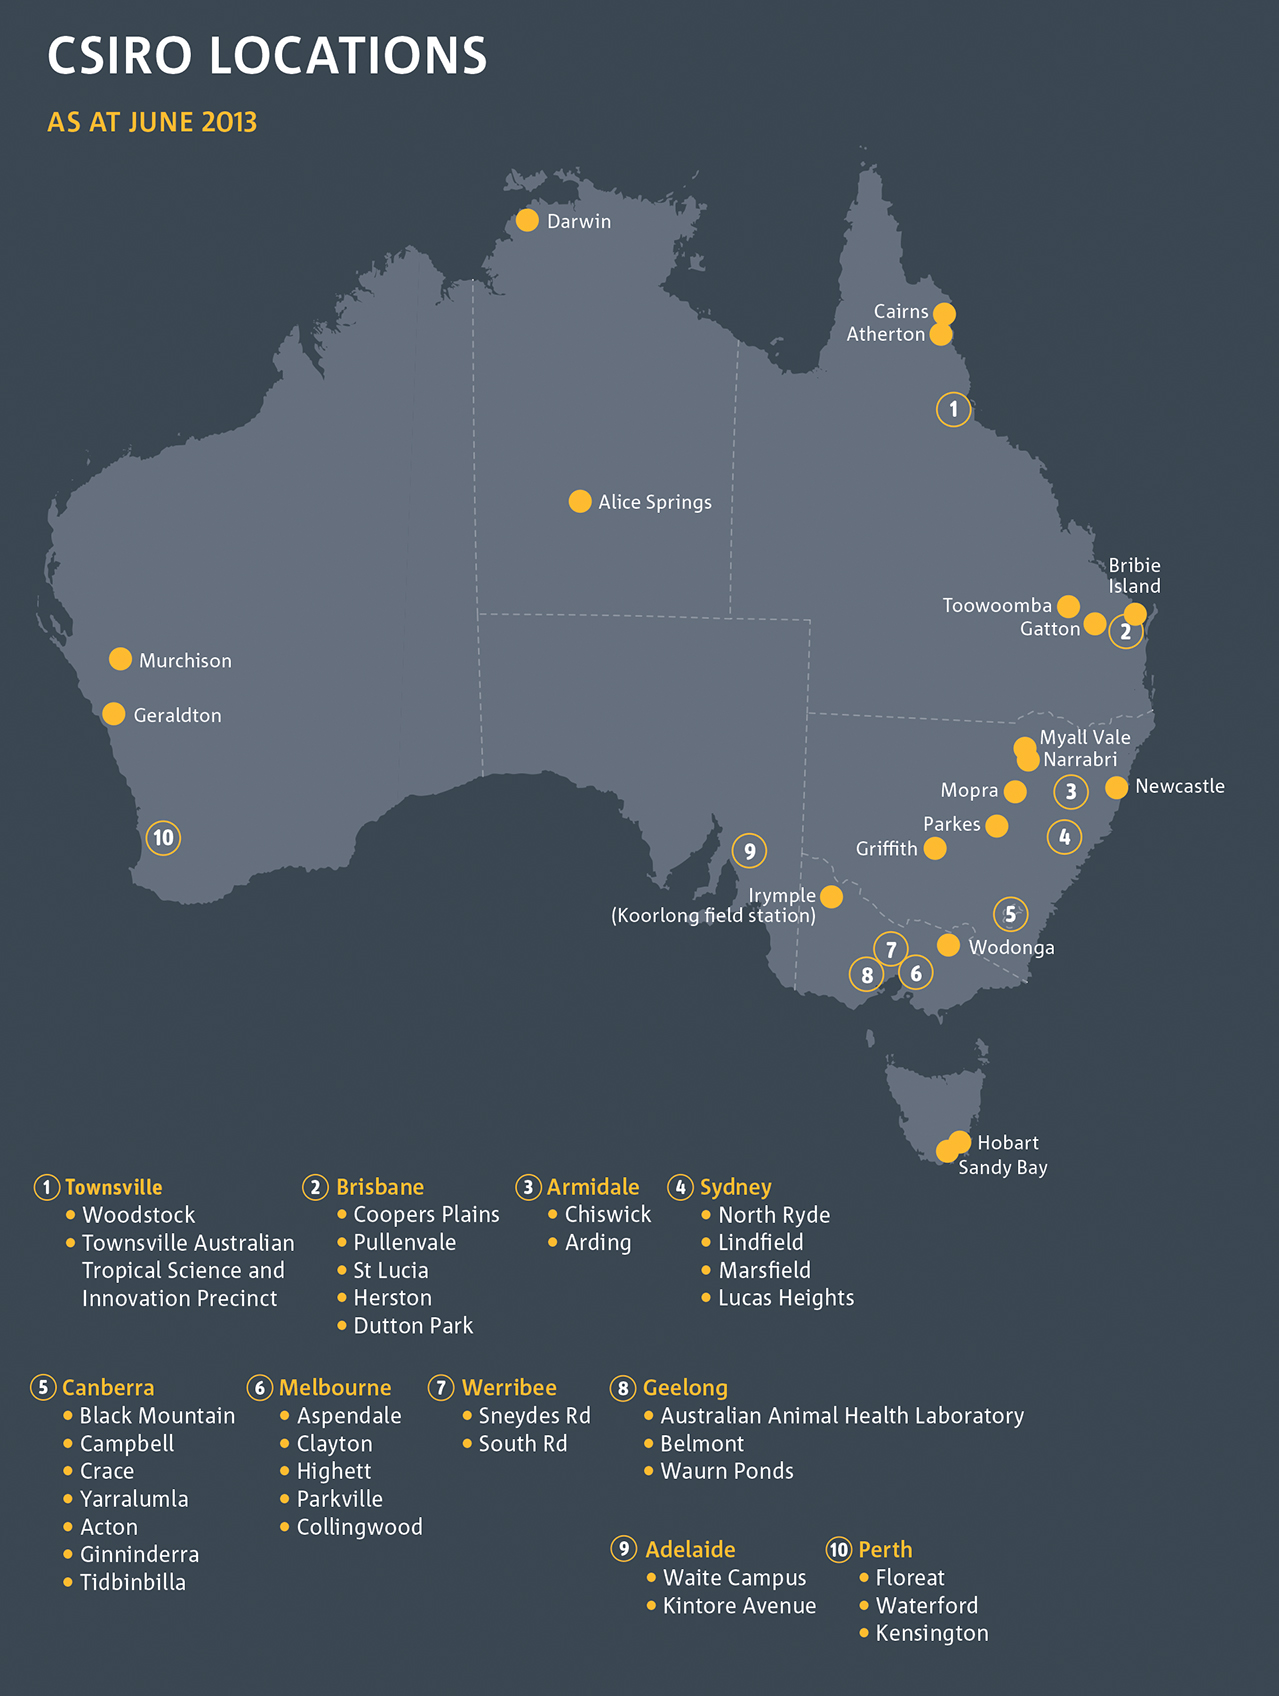 Map of Australia showing CSIRO locations as at June 2013.